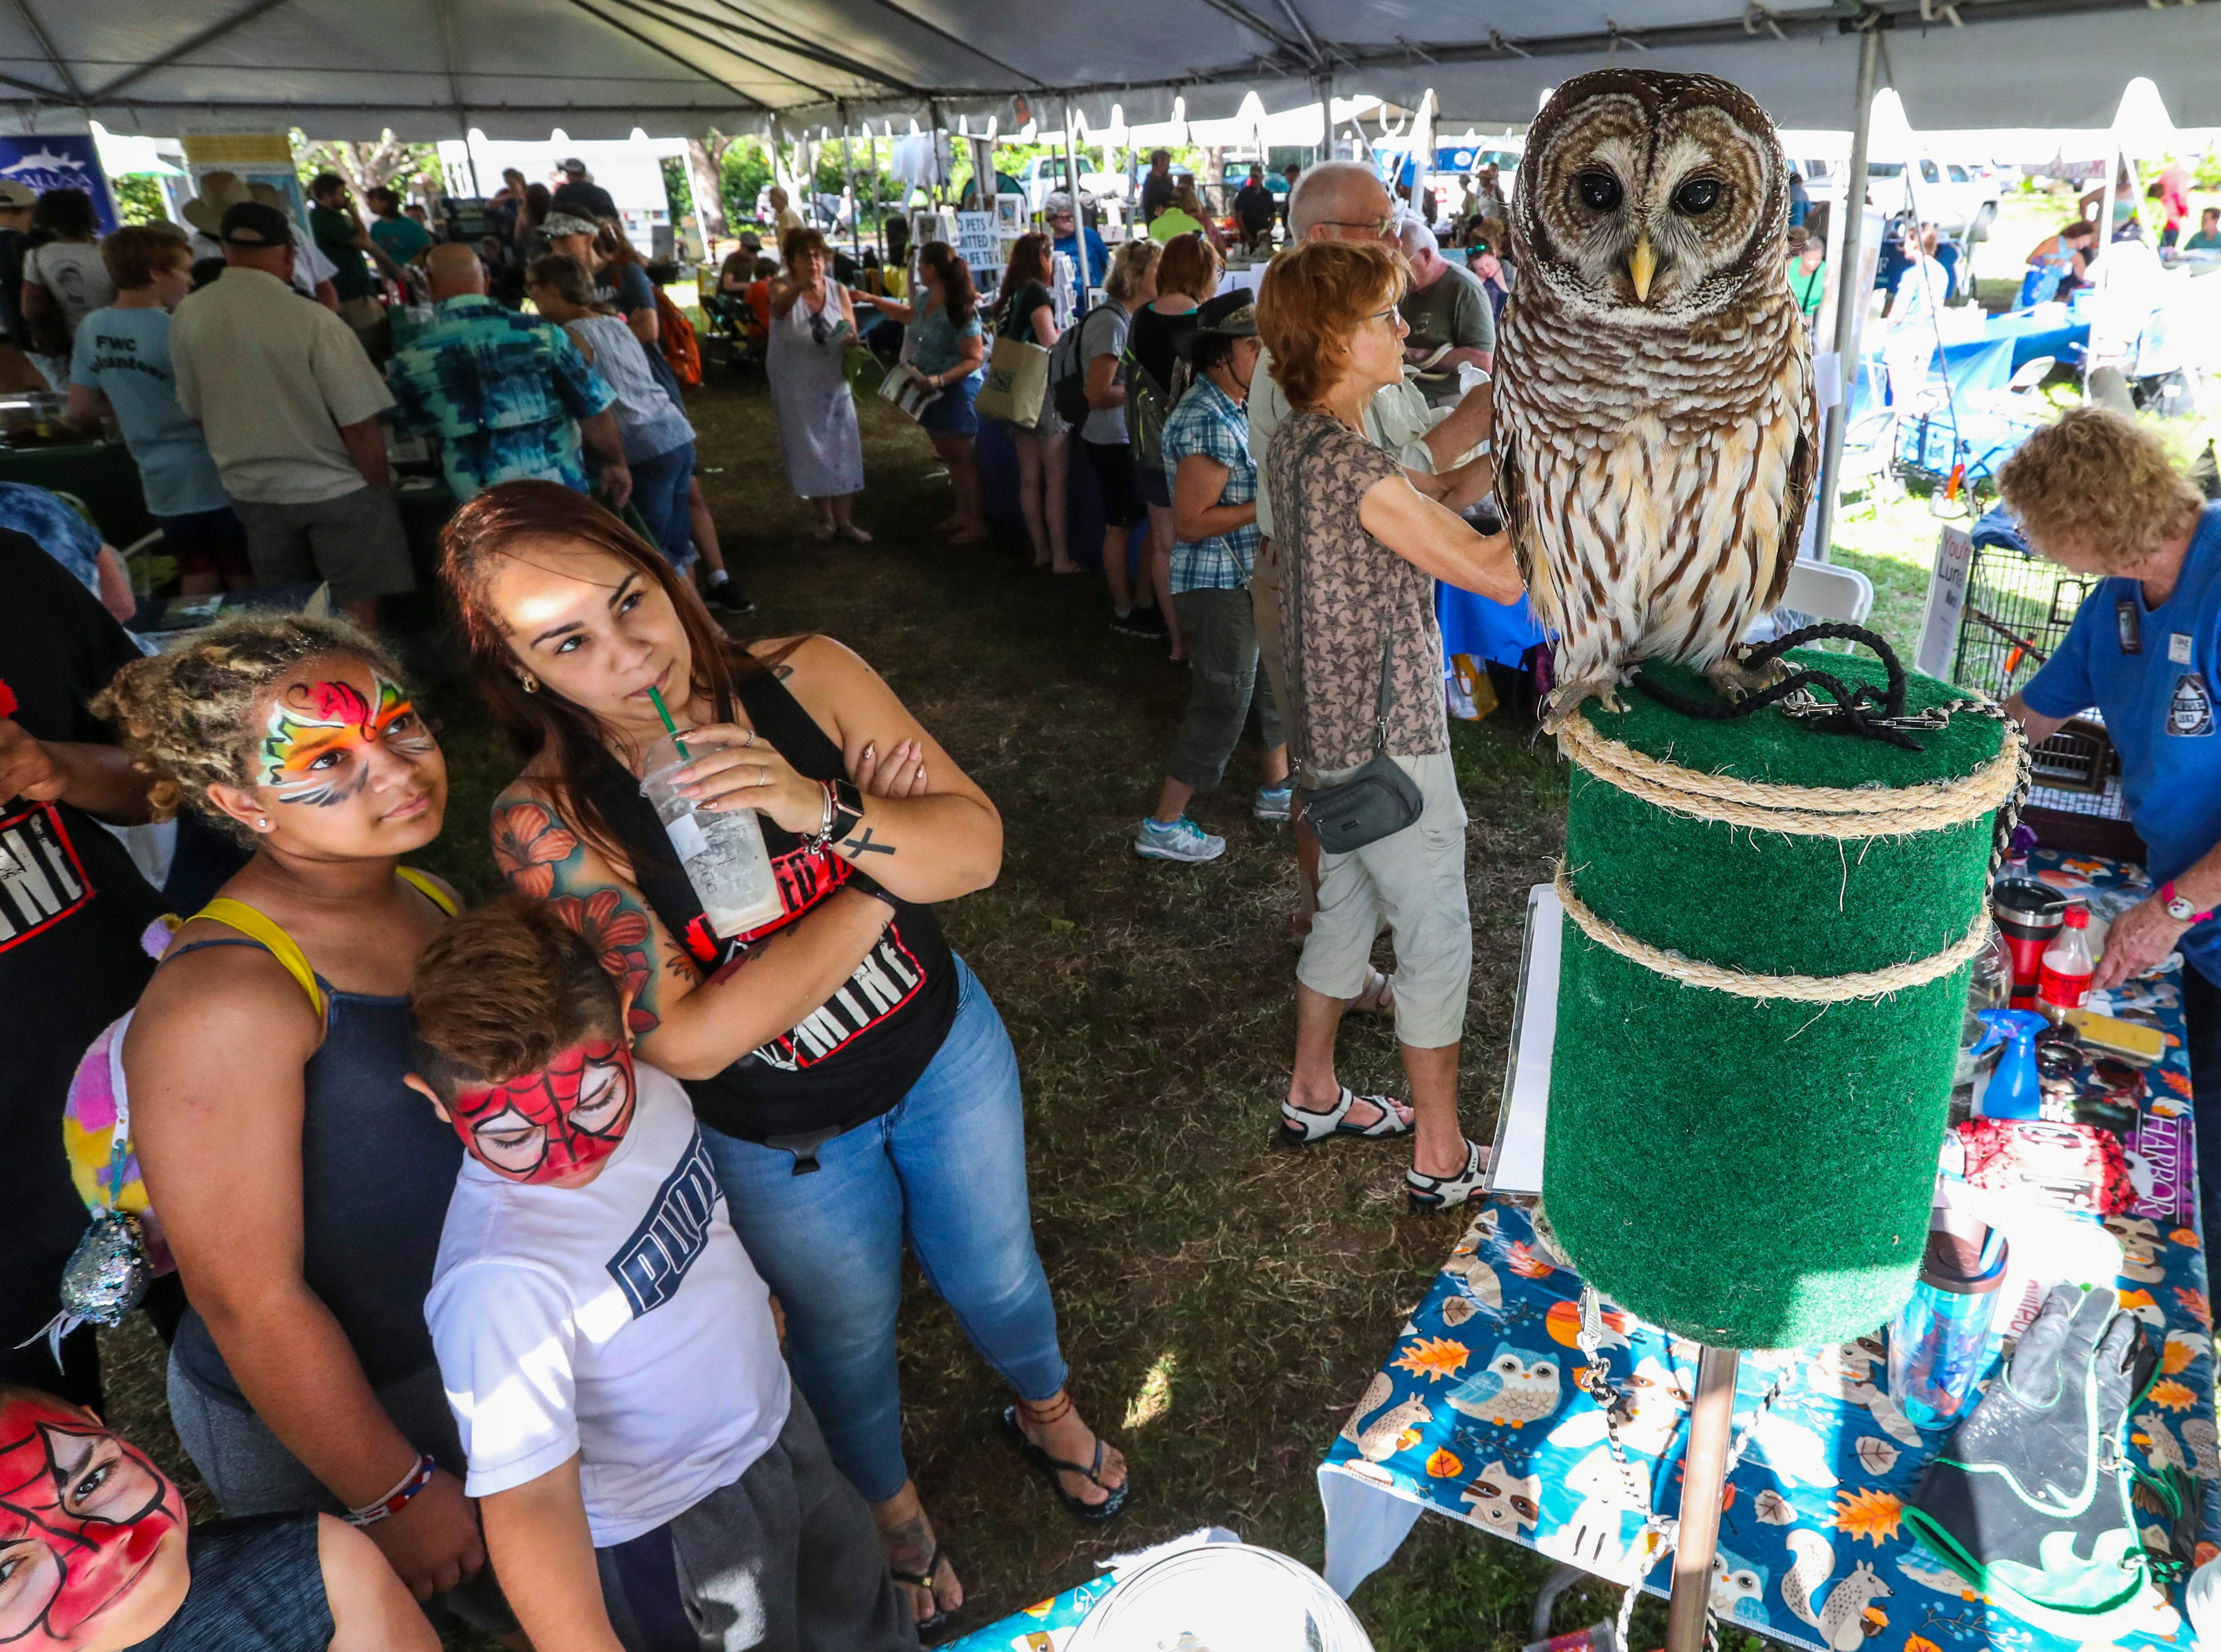 Cape Coral Florida's, official City bird was celebrated during the 17th Annual Burrowing Owl Festival at Rotary Park on Saturday, February 23, 2019. It was a fun day for the whole family, filled with entertaining and educational programs, hands-on activities for children, live animals, guided nature walks, butterfly house tours, bus tours to active owl burrows.